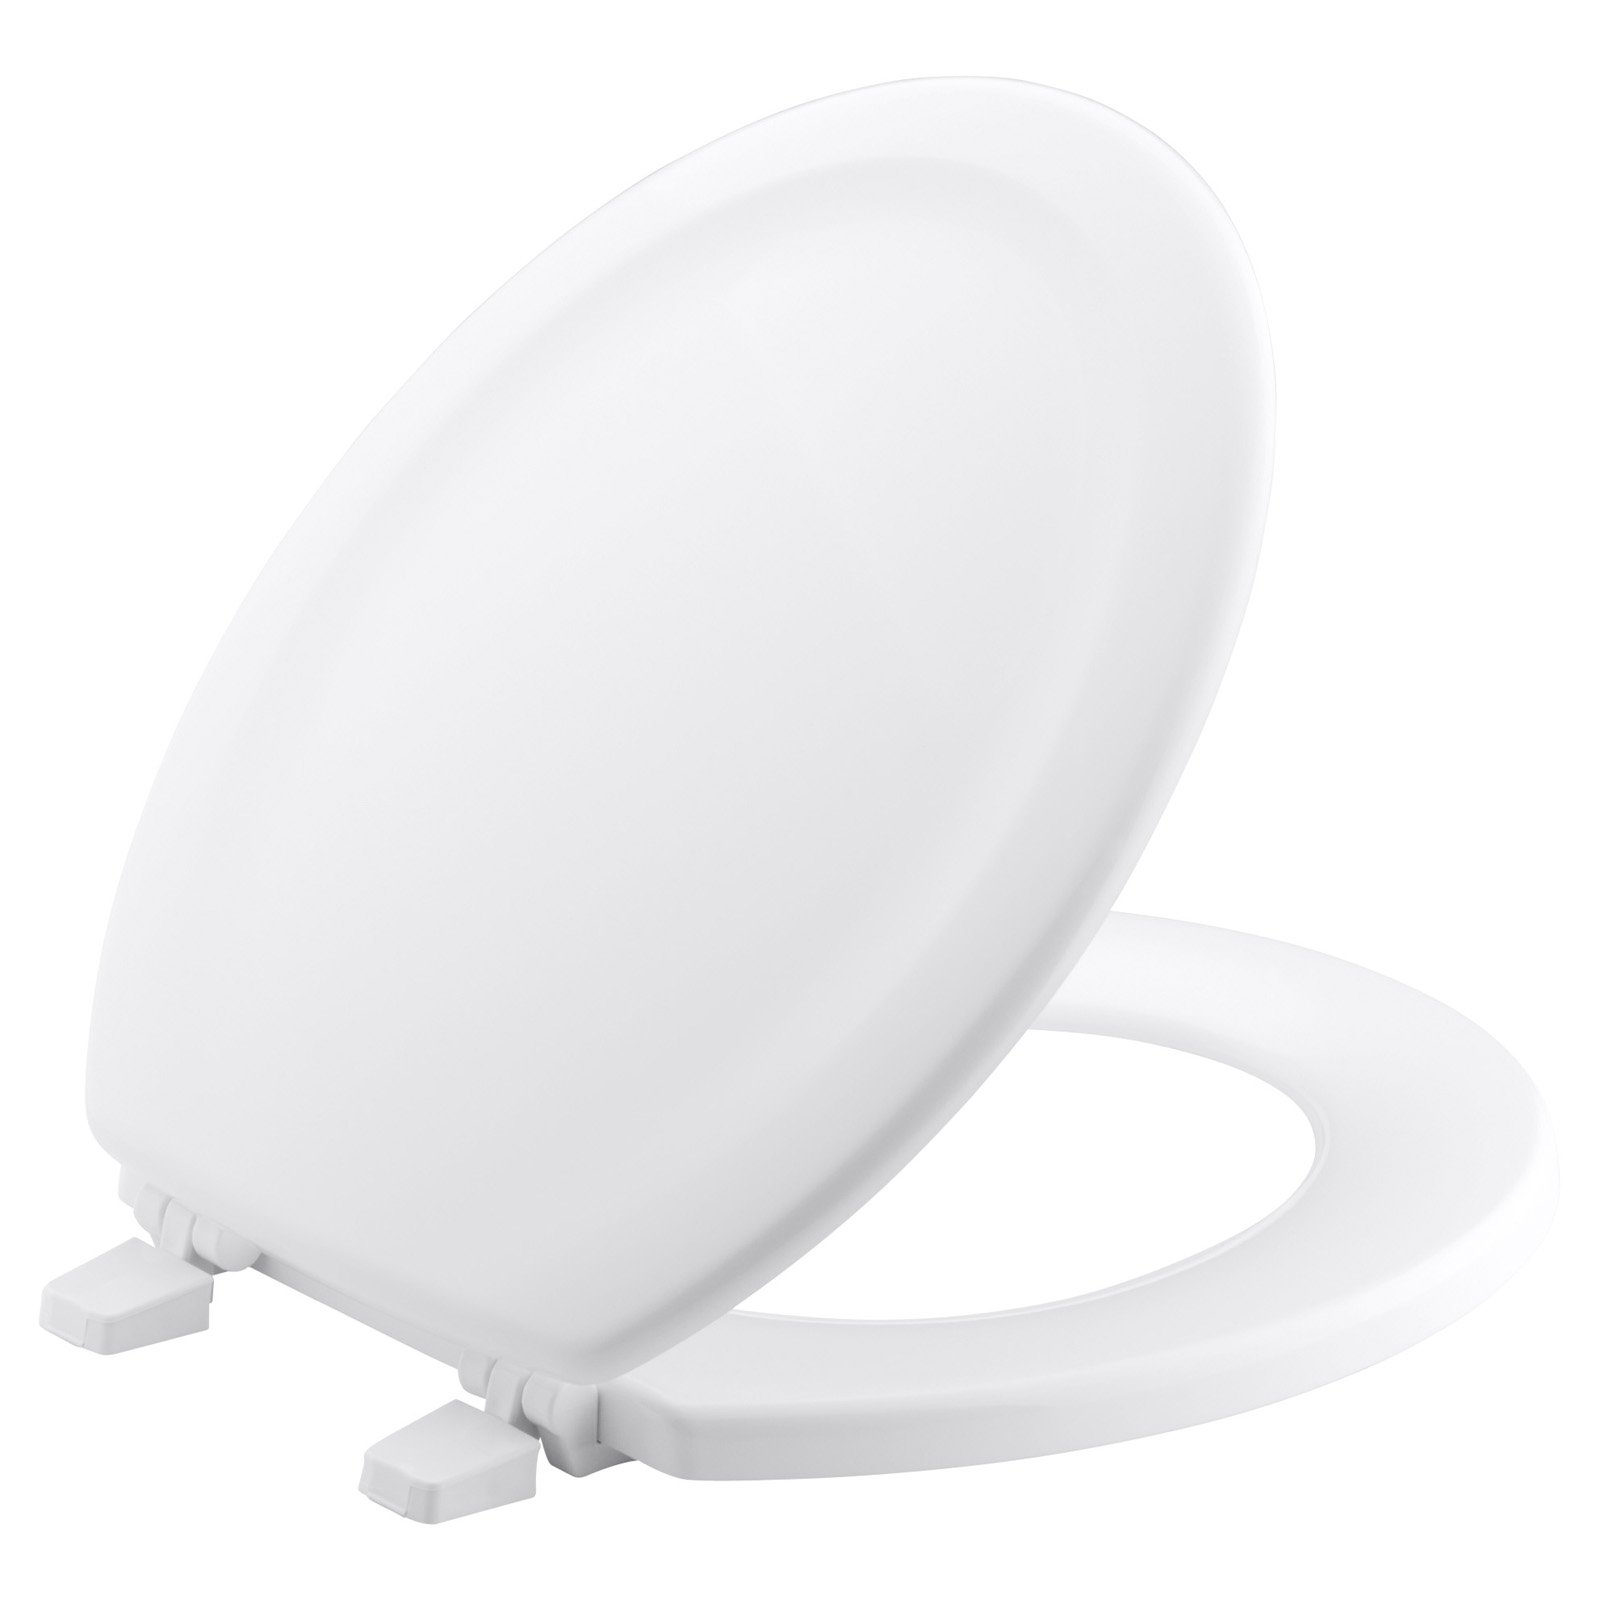 Peachy Kohler Stonewood Round Front Toilet Seat White Products In Pdpeps Interior Chair Design Pdpepsorg